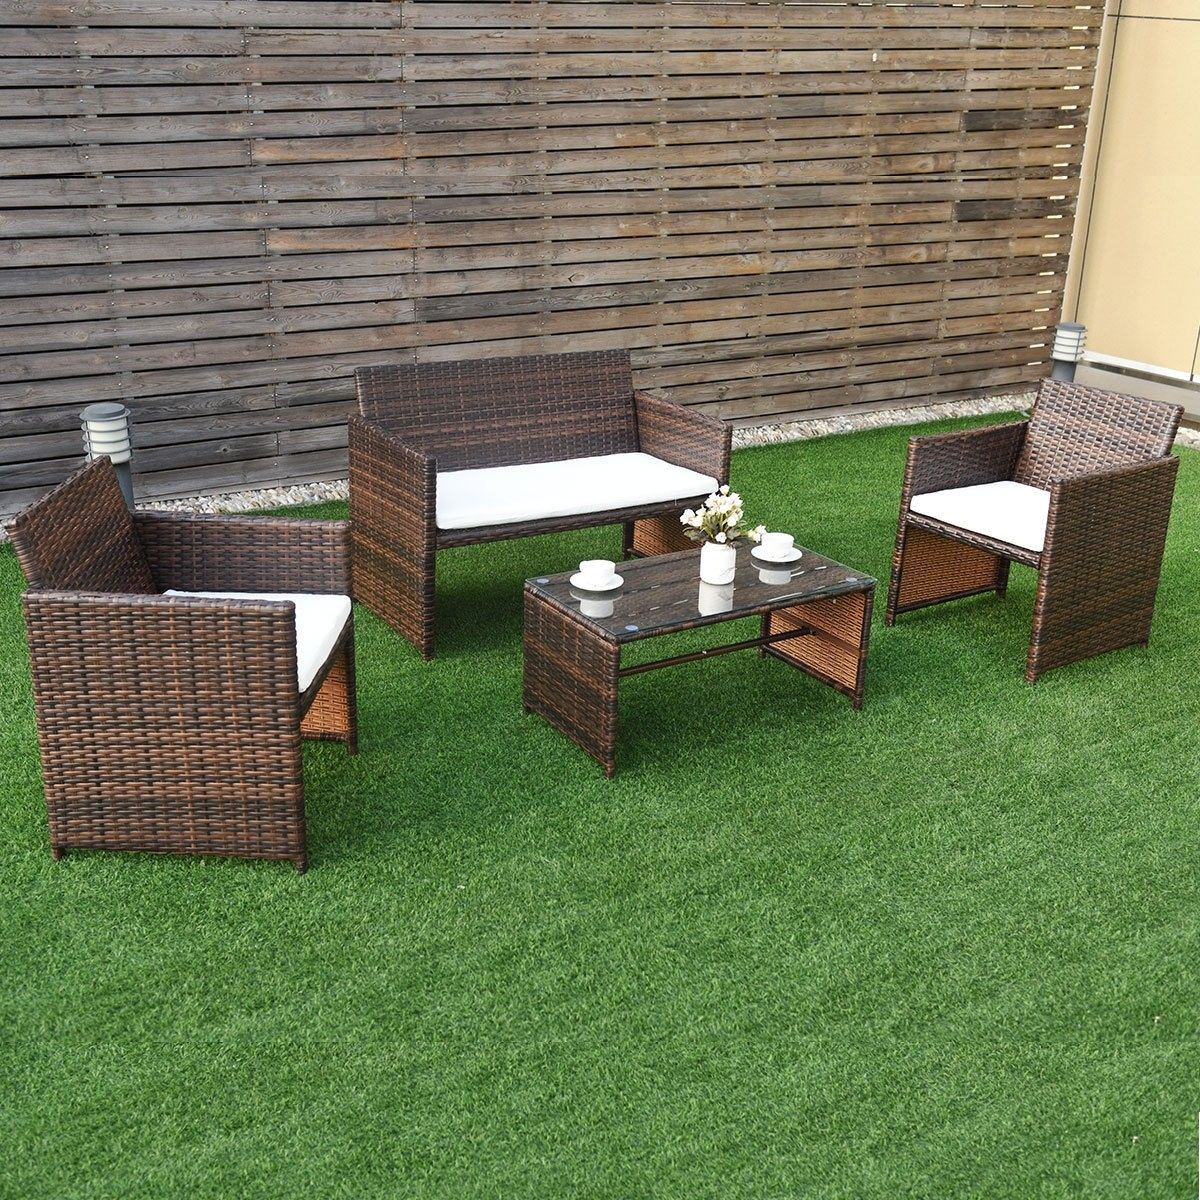 4 Pc Rattan Patio Furniture Set Garden